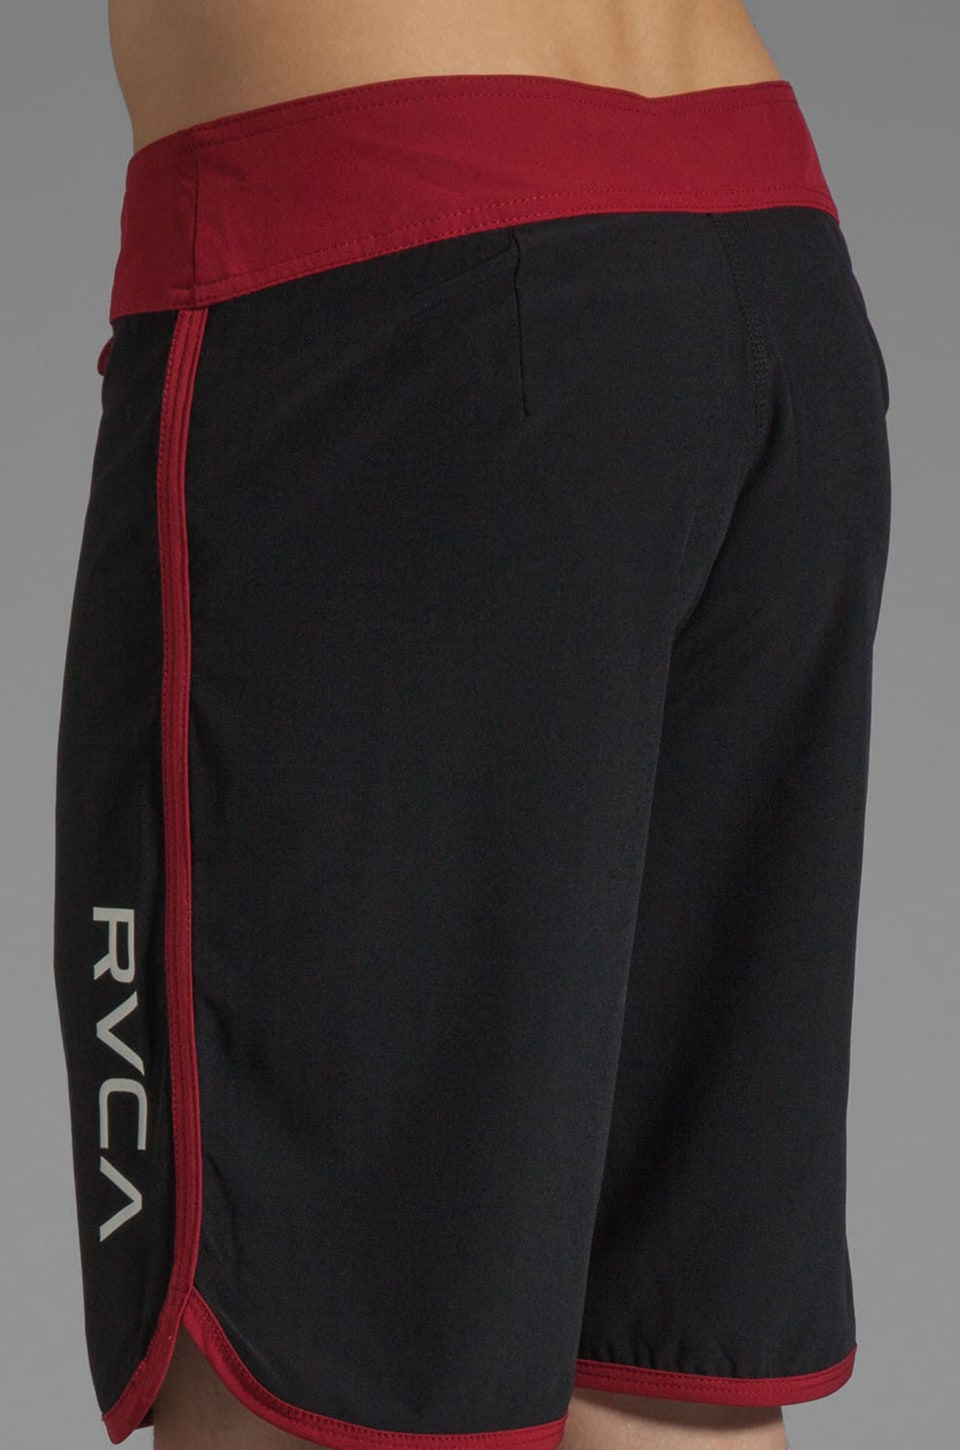 "RVCA Eastern 20"" Trunk in Black/Red Grease"